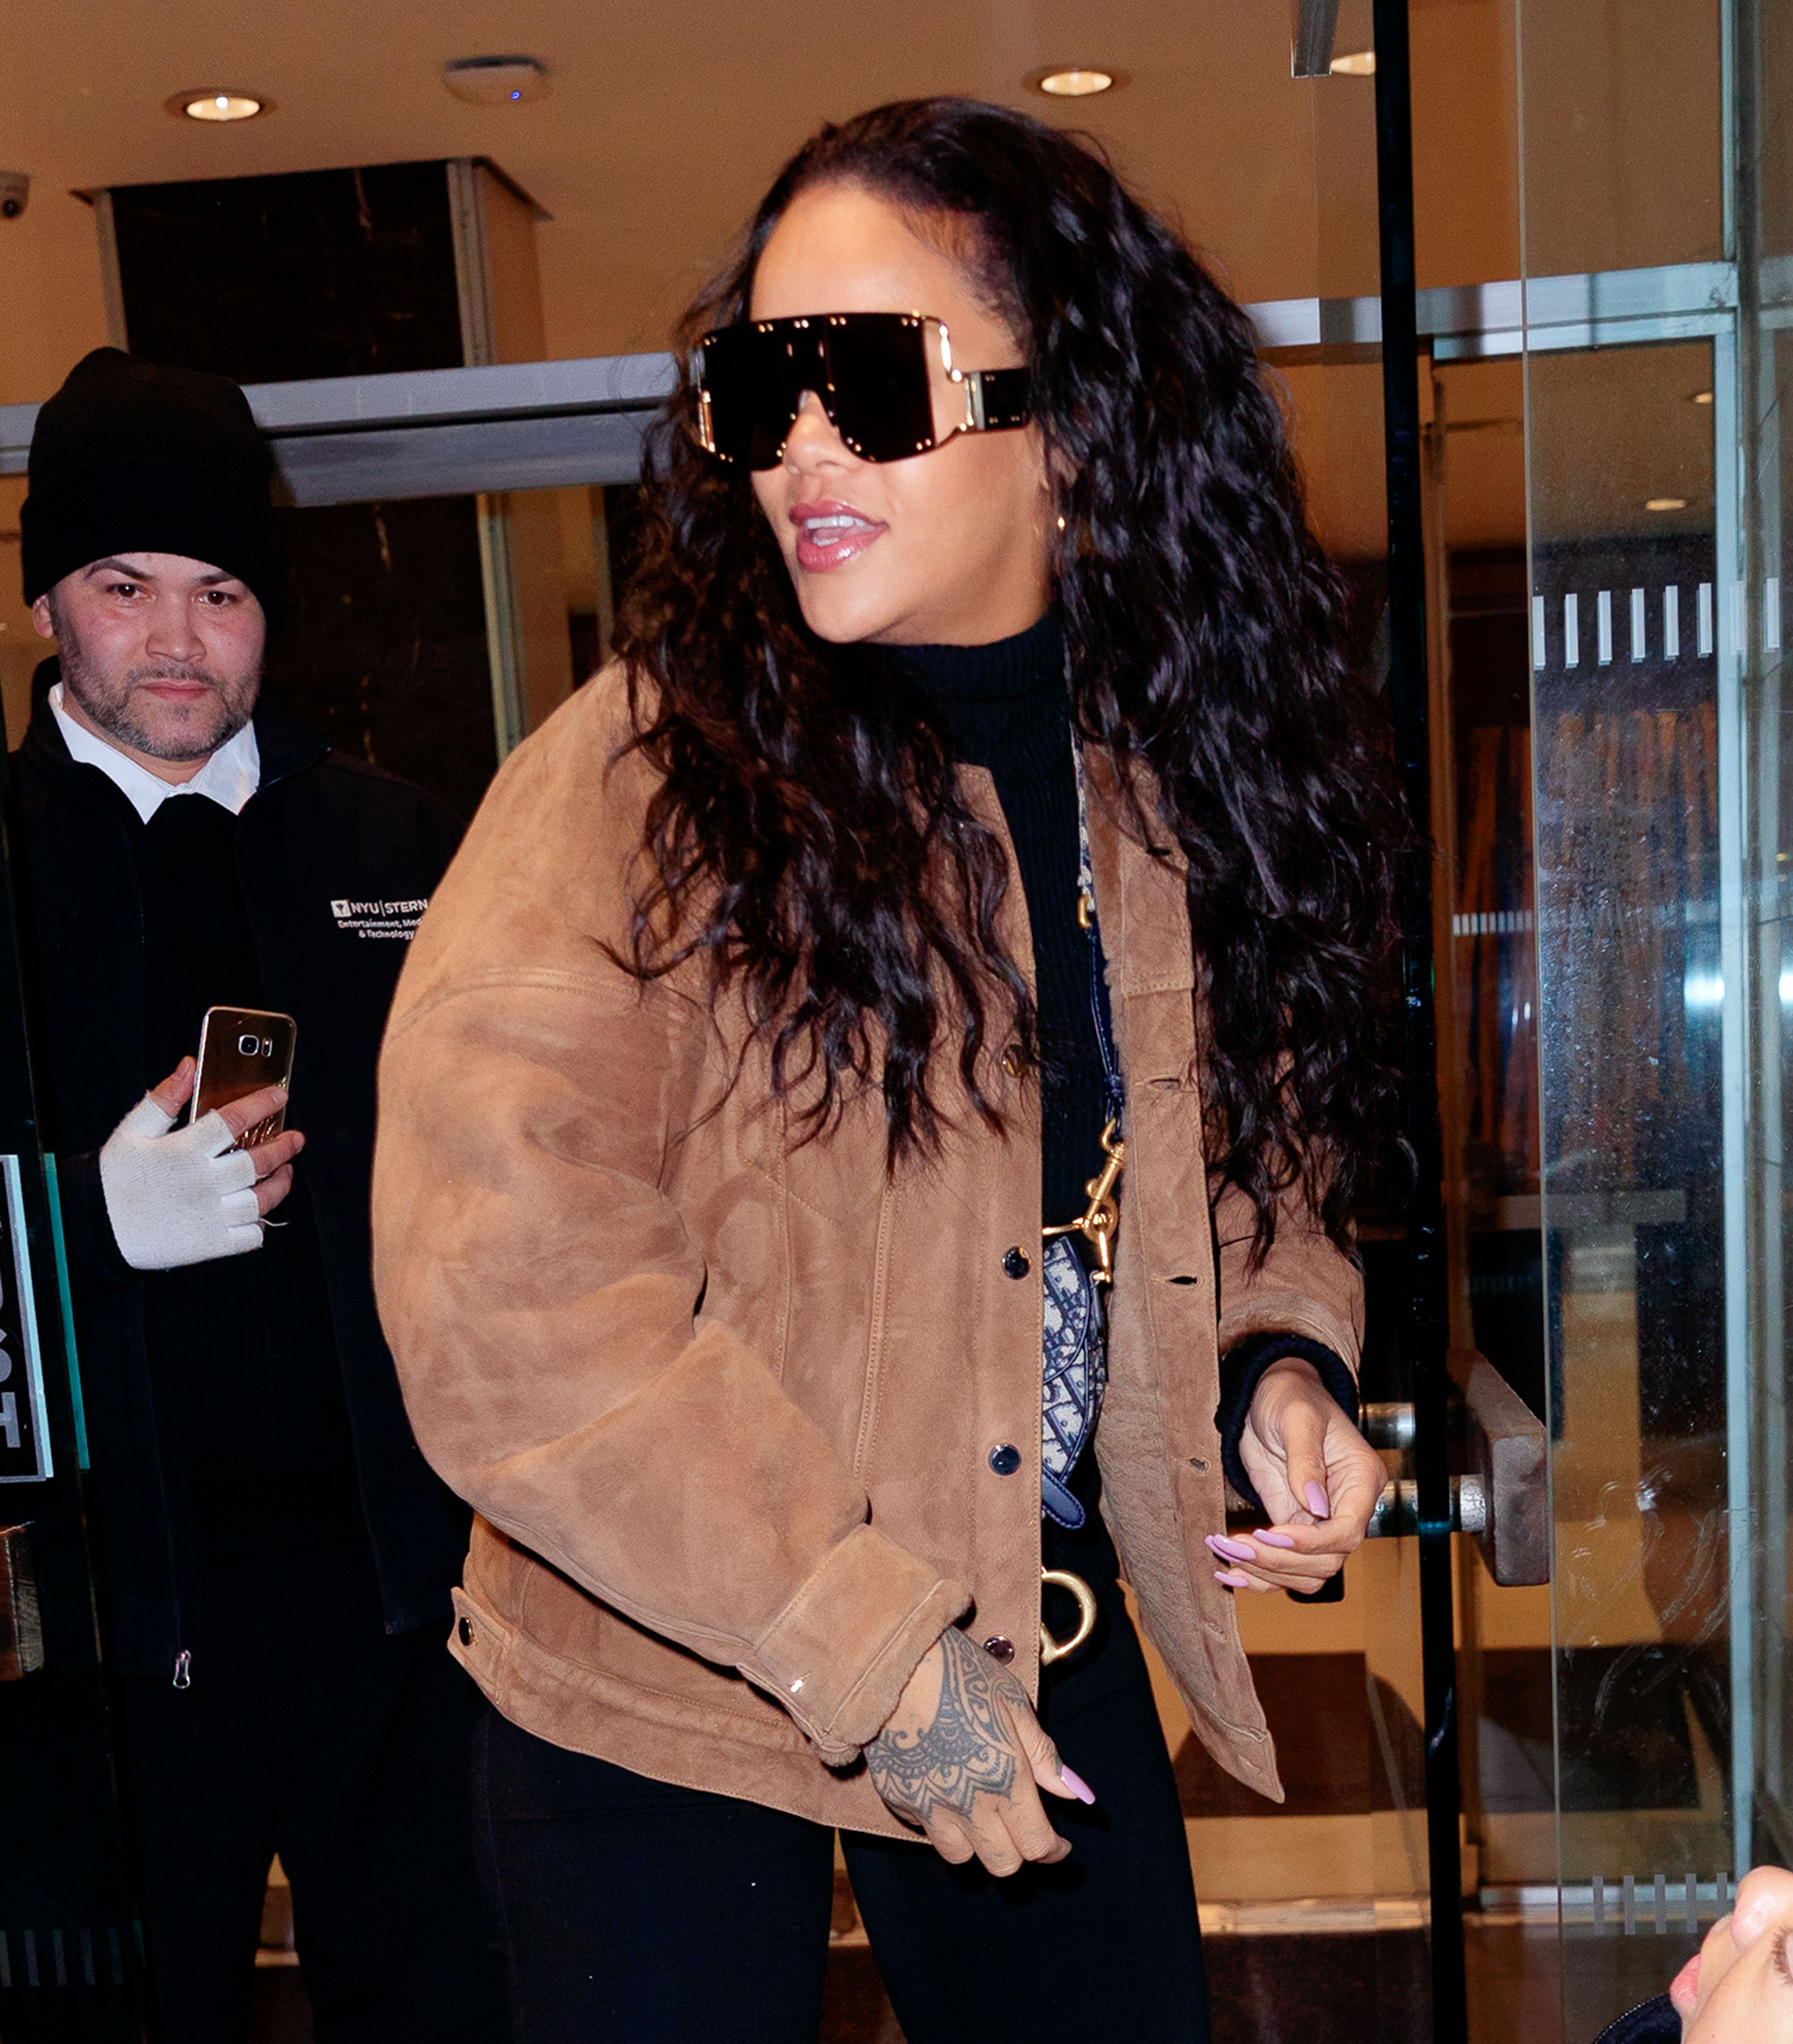 How Rihanna became one of the most influential people in fashion